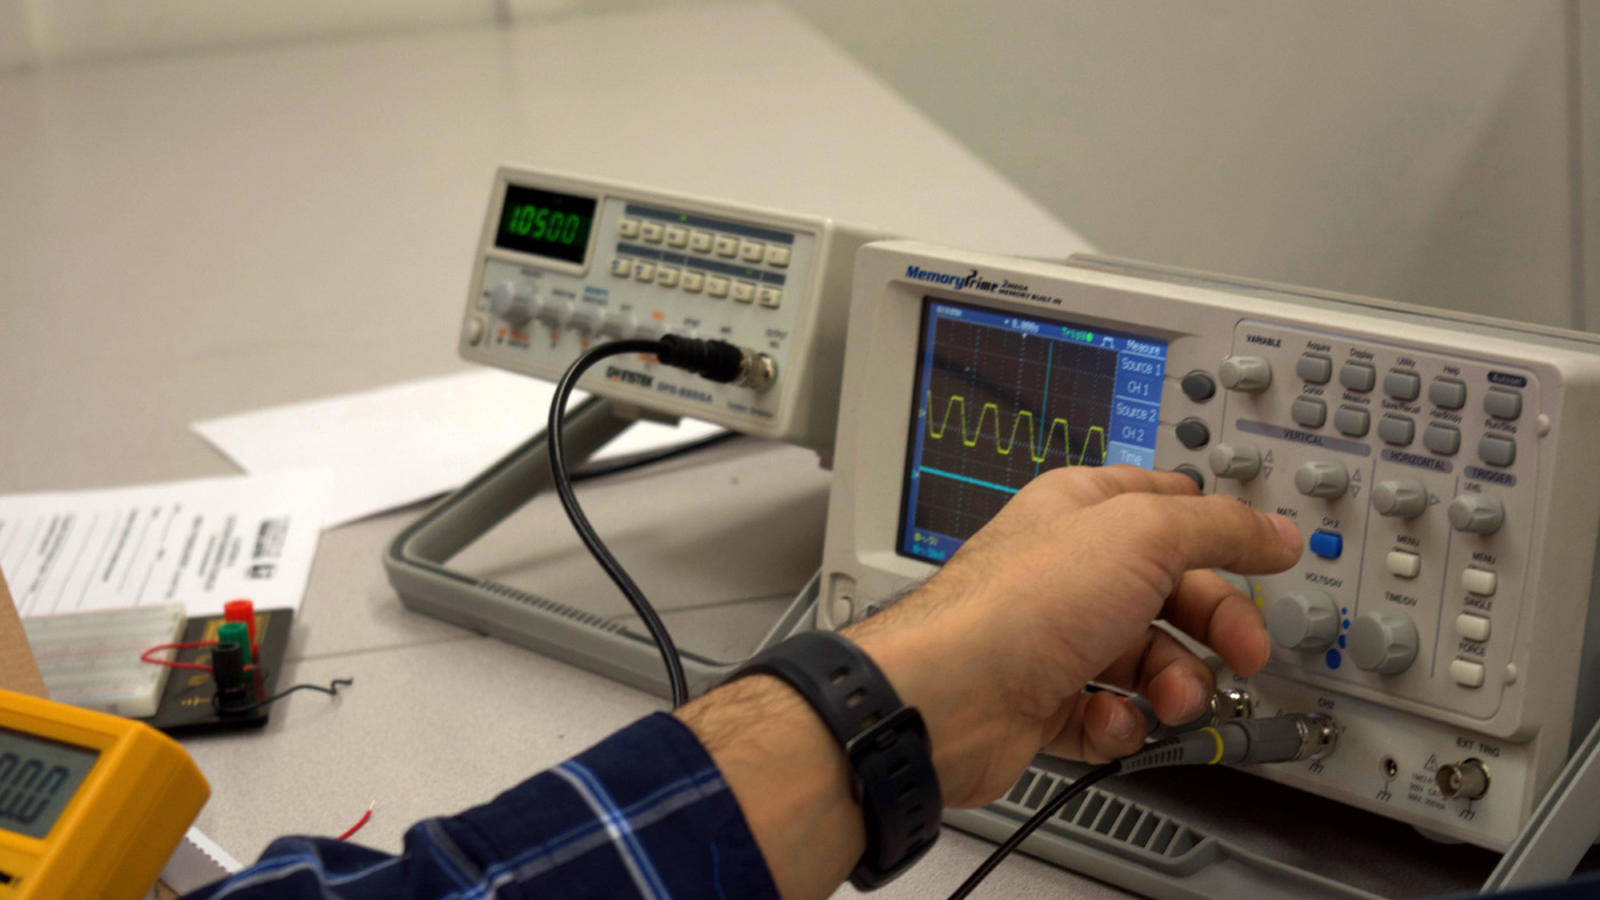 An electronics student adjusts an oscilloscope to measure voltage change in a circuit.